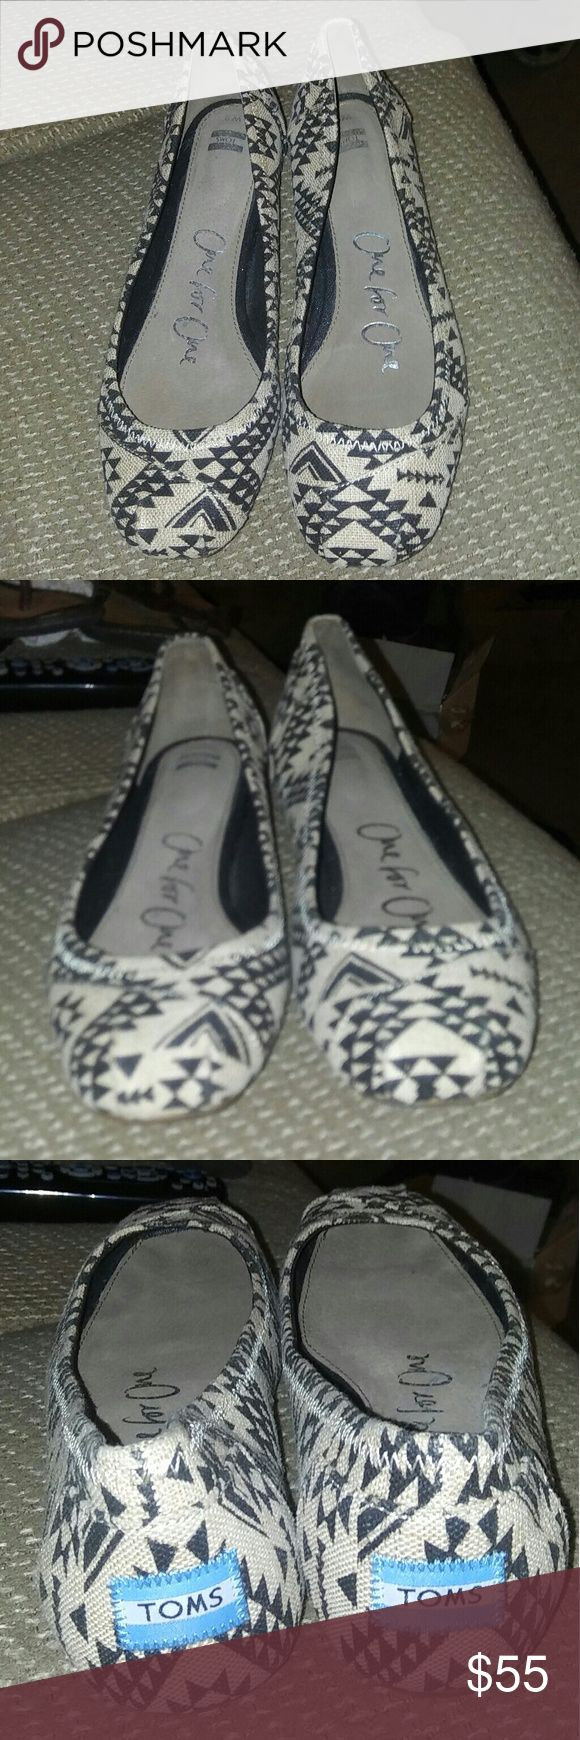 Toms Tribal Black / Cream Ballet Flat. Sz 9 Excellent like New condition. Worn once. Too long on me. I need a smaller size. No signs of wear. No sole wear. No insole wear. No scuffing. TOMS Shoes Flats & Loafers